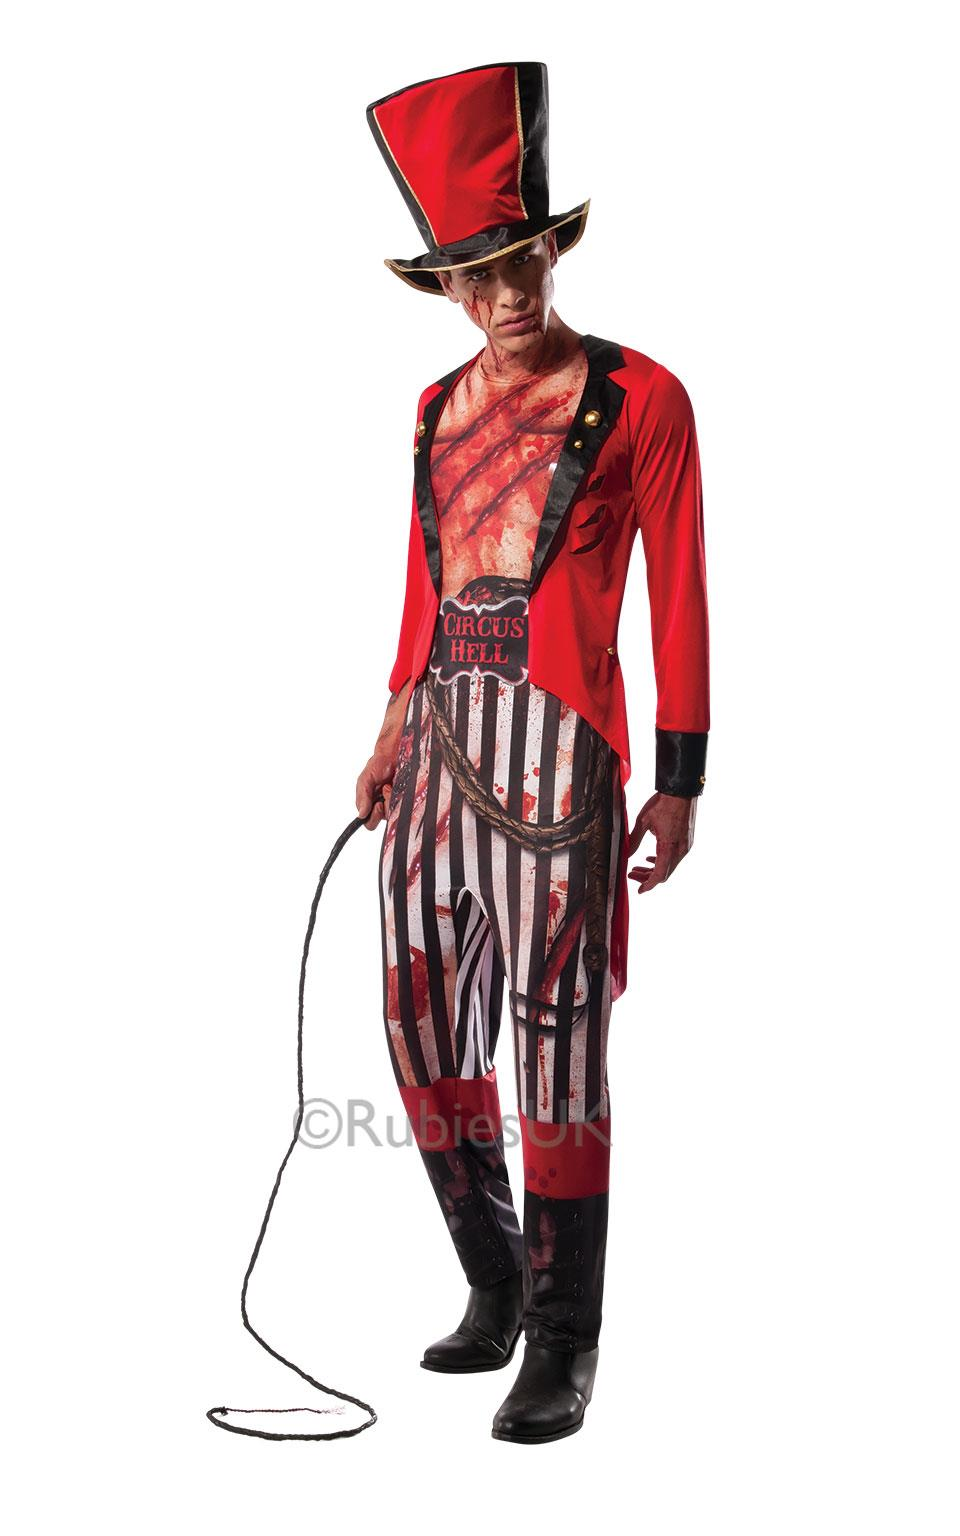 Circus Hell Lion Tamer Costume PlusPng.com  - Lion Tamer PNG